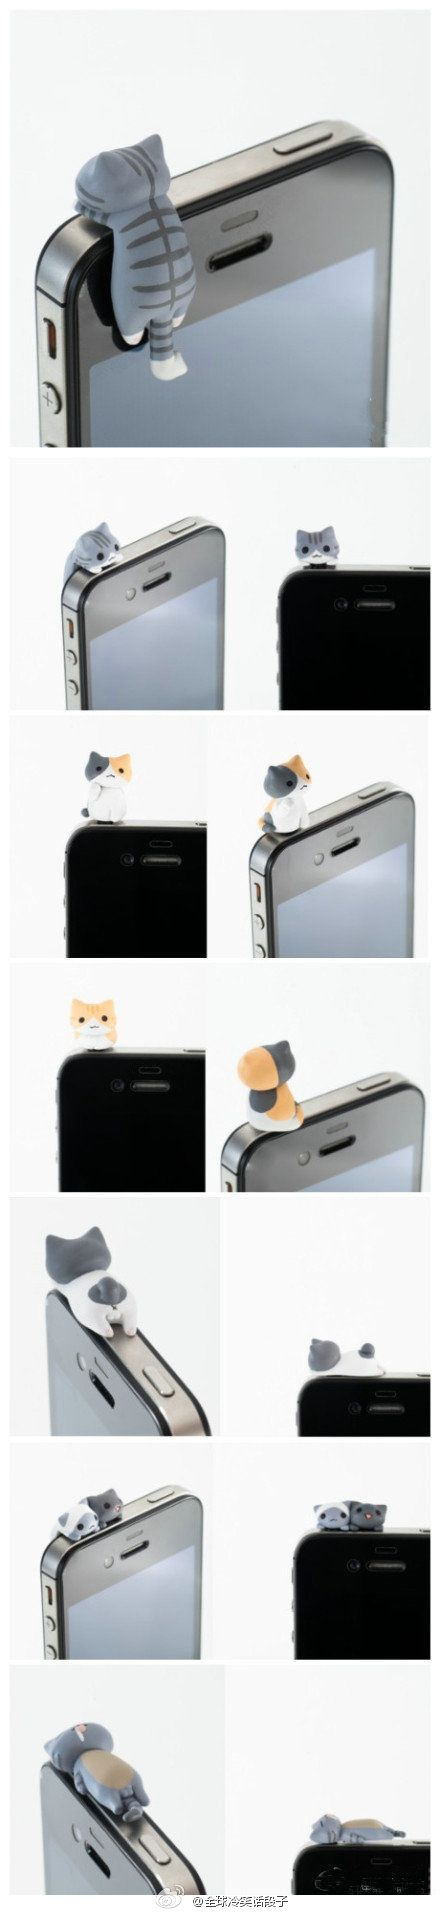 cute-iphone-cat-accessories- alright, need all of tese